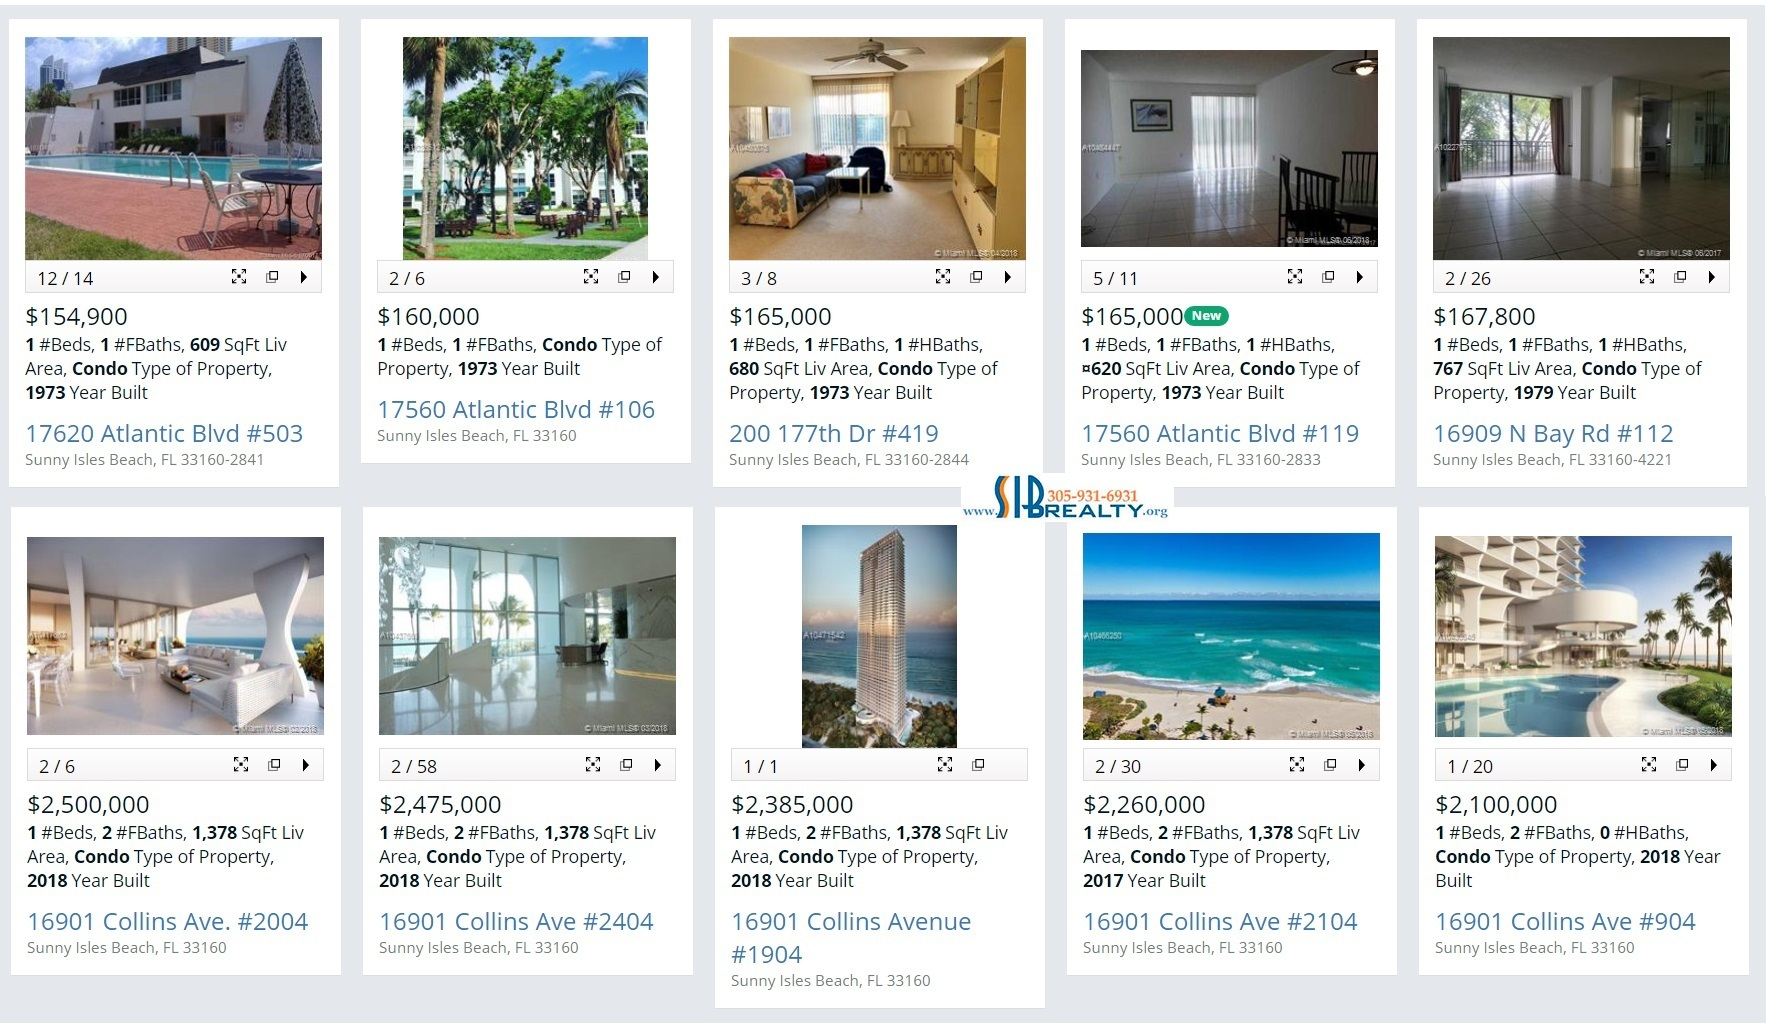 One Bedroom Condo For Sale Sunny Isles Beach June 23 2018